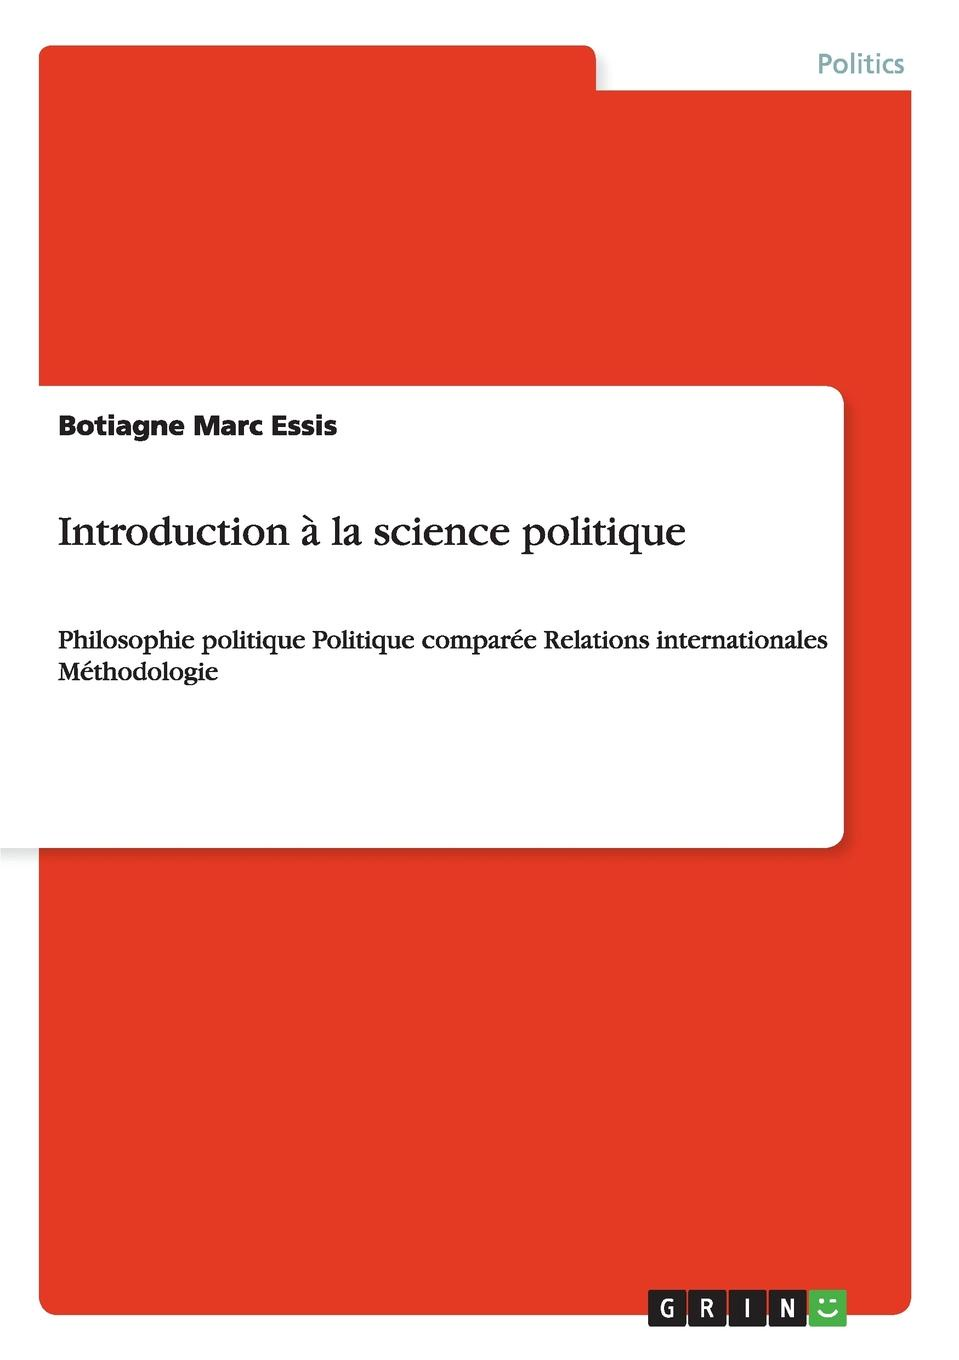 Botiagne Marc Essis Introduction a la science politique jean batiste say traite d economie politique t 1